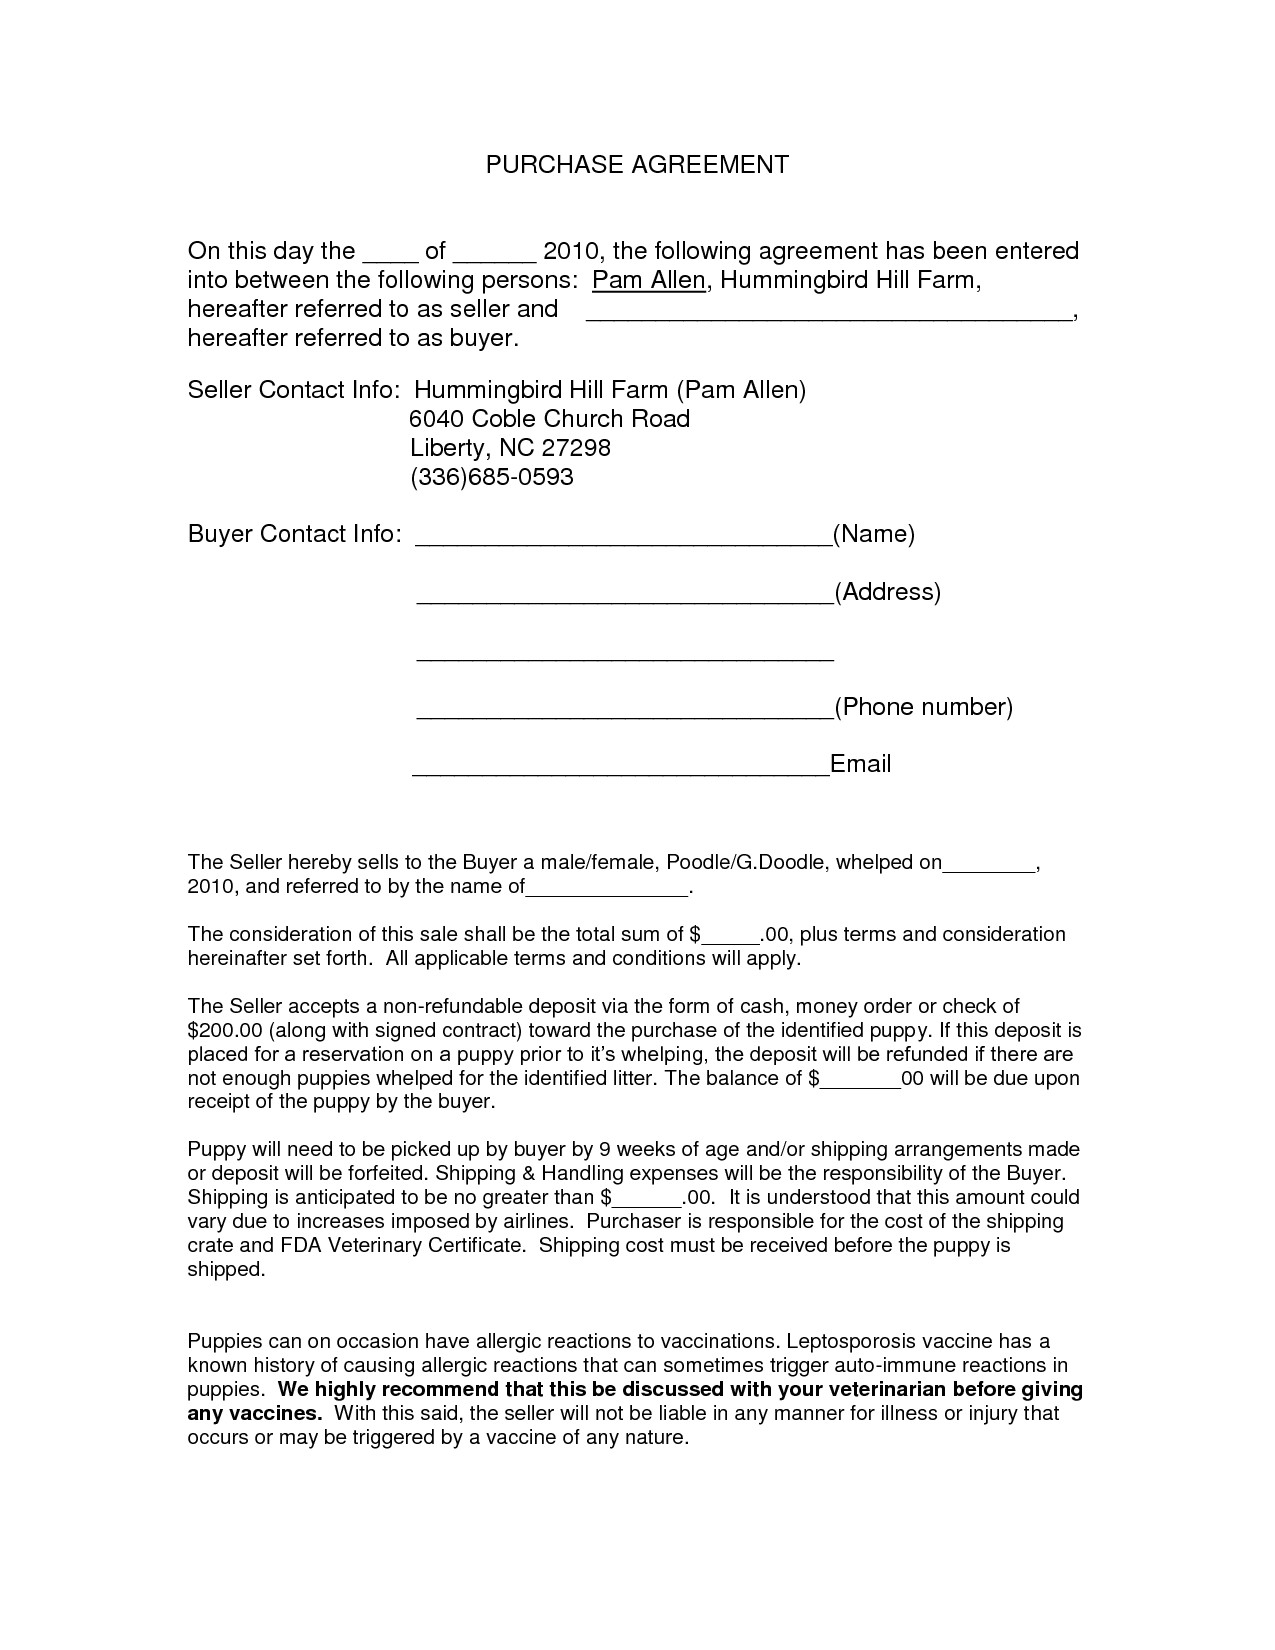 Purchase Contract Cancellation Agreement Template Auto Purchase Agreement form Doc by Nyy13910 Purchase